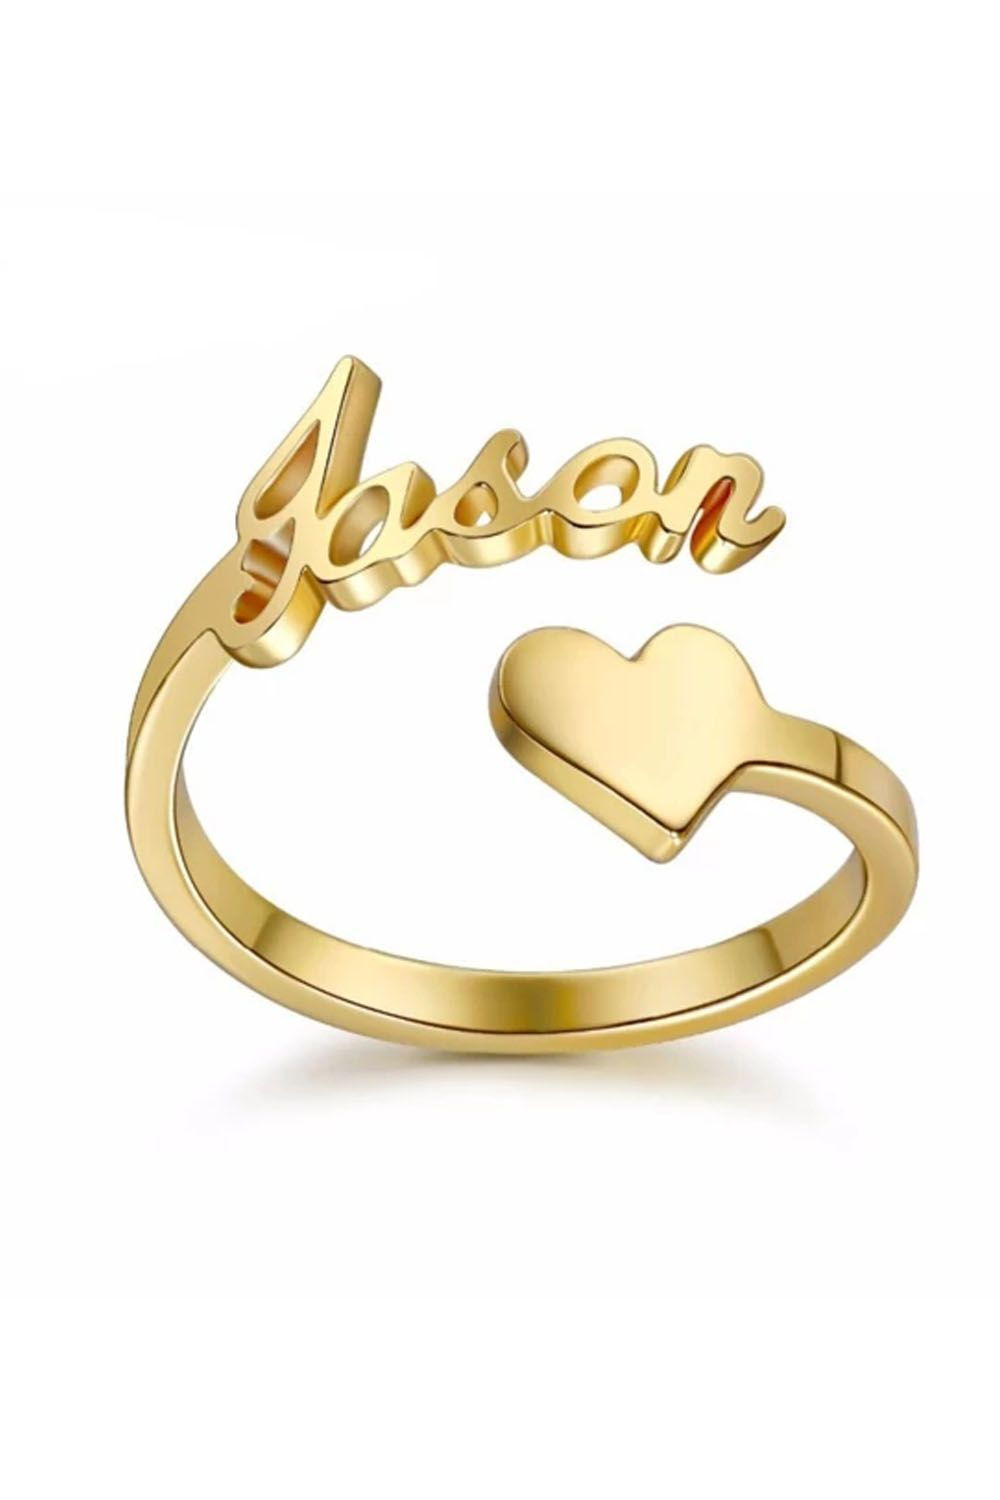 Minimalist Ring Initial Band Personalized Wrap Ring Ring for Lover Adjustable Custom Rings Couple Rings Personalized Name Ring